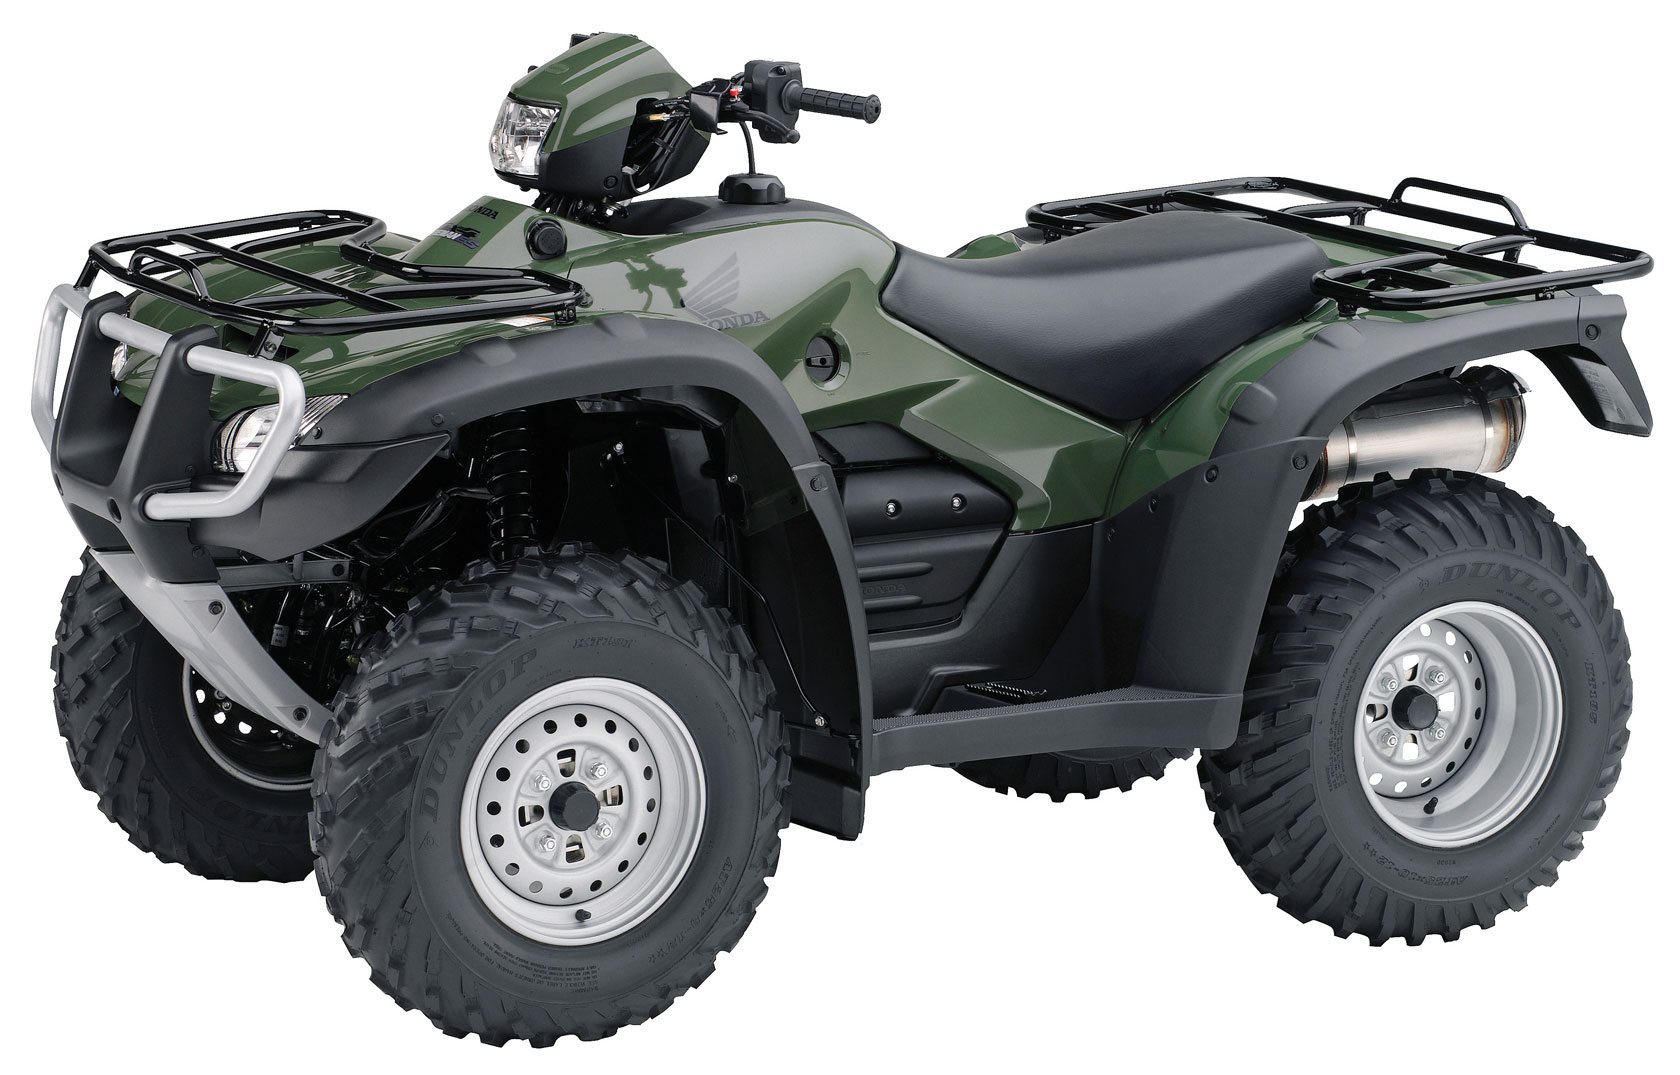 hight resolution of honda fourtrax foreman 4x4 es trx500fe specs 2008 2009honda fourtrax foreman 4x4 es trx500fe